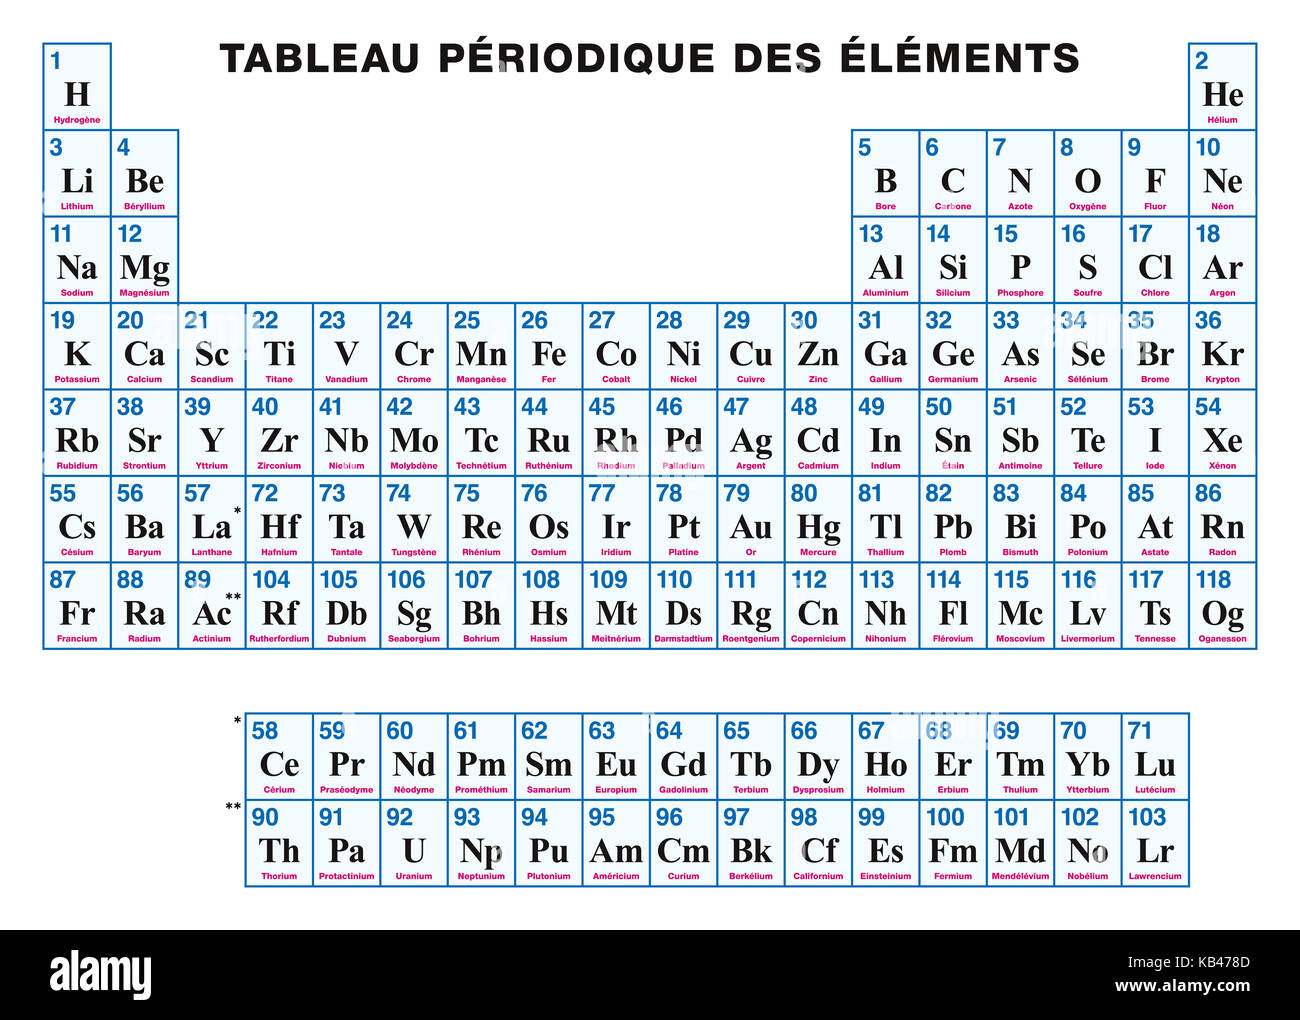 Periodic table of the elements french tabular arrangement of periodic table of the elements french tabular arrangement of chemical elements with their atomic urtaz Images